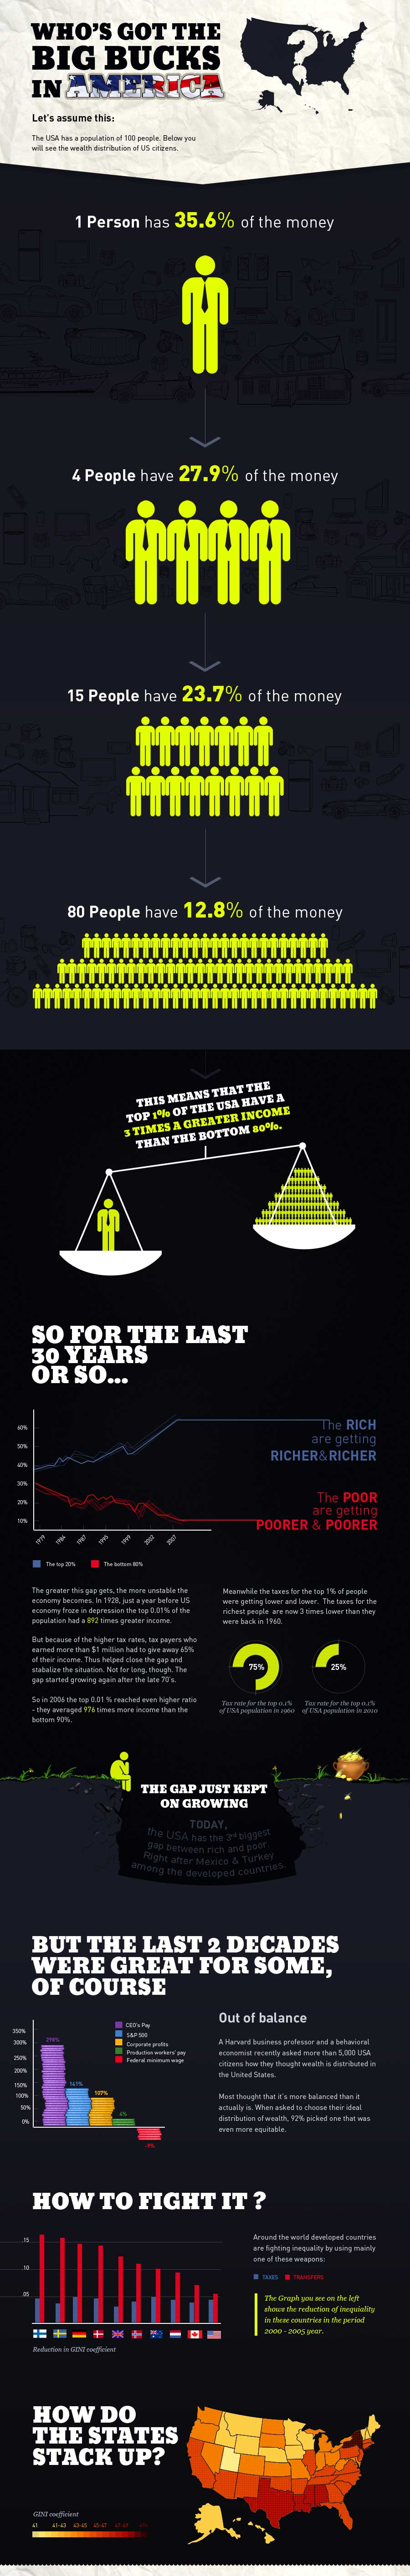 Wealth and Inequality in the United States